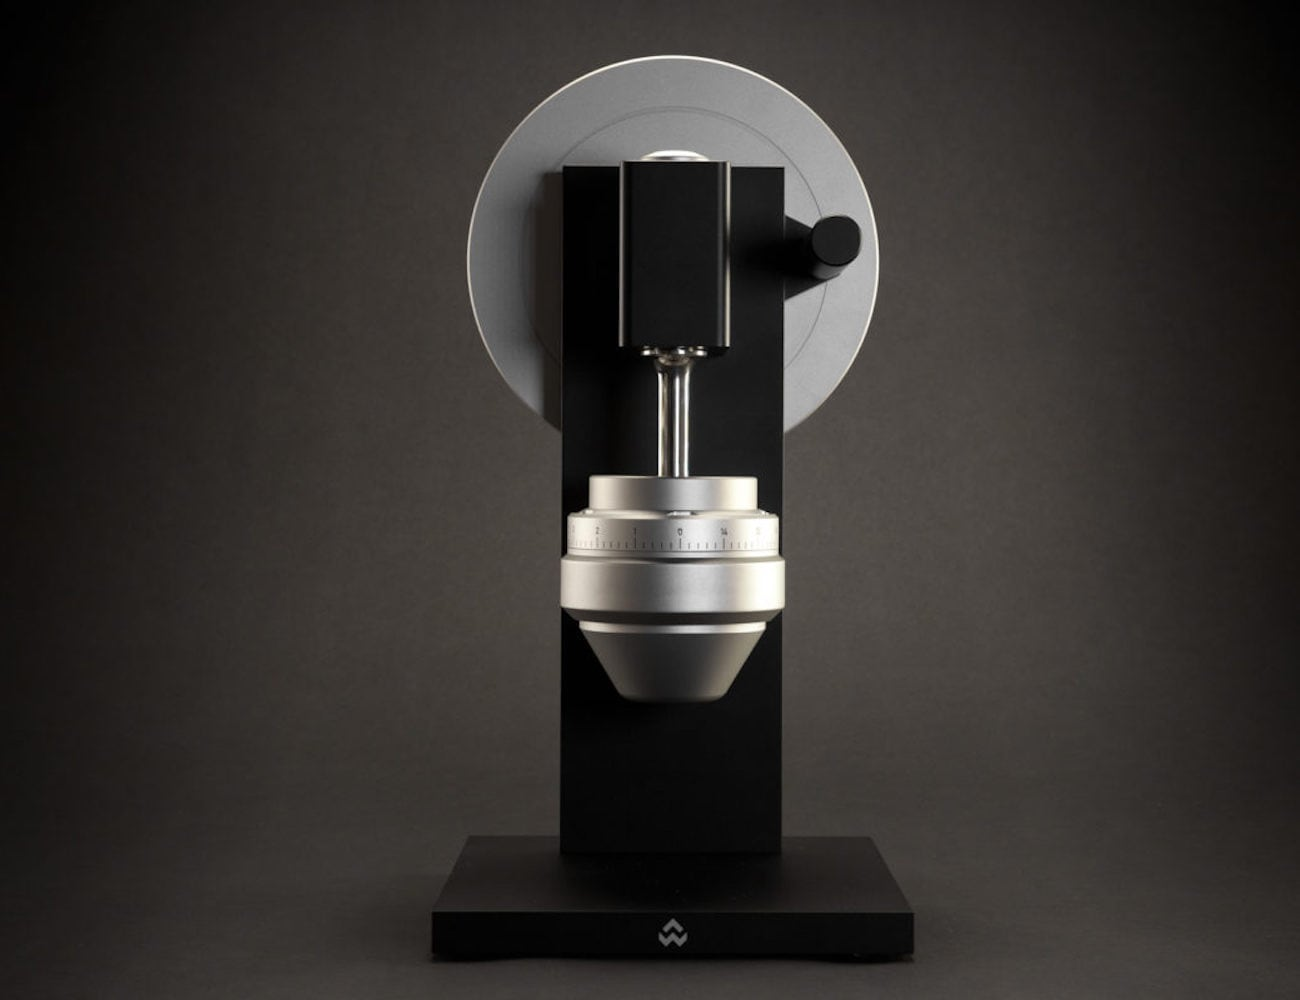 HG-1 One-Handed Countertop Coffee Grinder brings the coffee shop to your kitchen